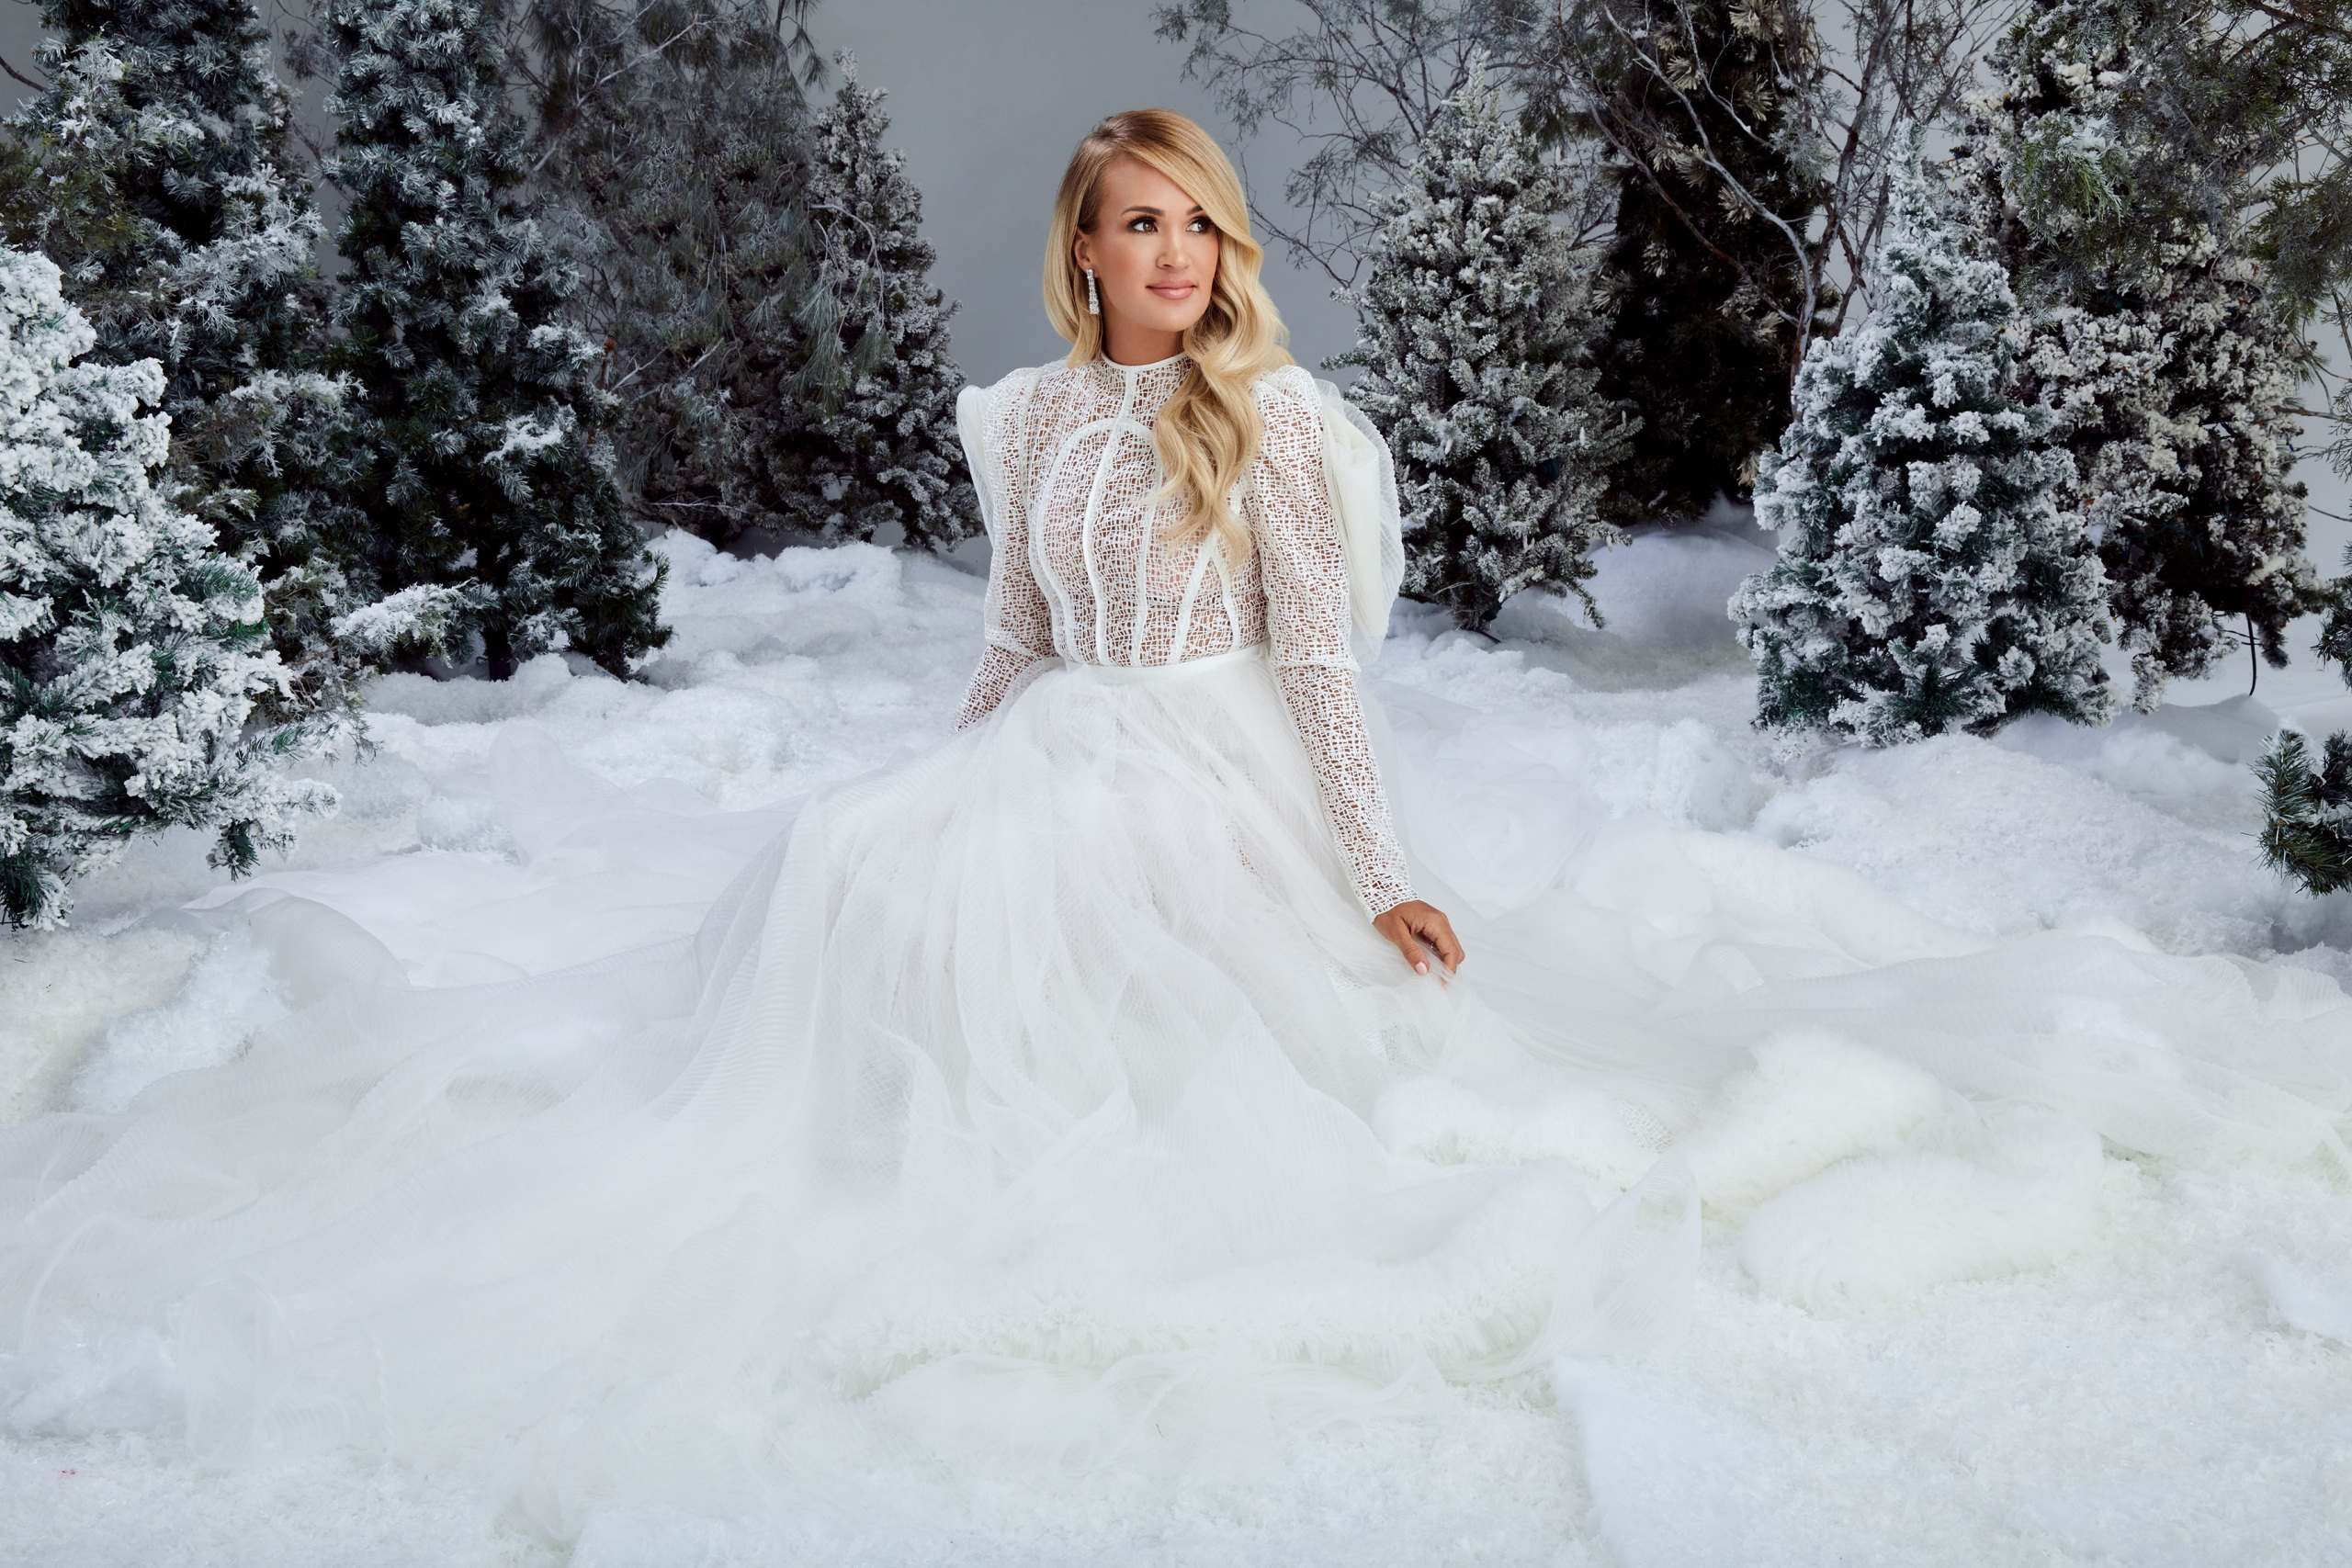 CARRIE UNDERWOOD AND HBO MAX GET INTO THE HOLIDAY SPIRIT WITH A CHRISTMAS SPECIAL HIGHLIGHTING HER FIRST-EVER CHRISTMAS ALBUM, MY GIFT